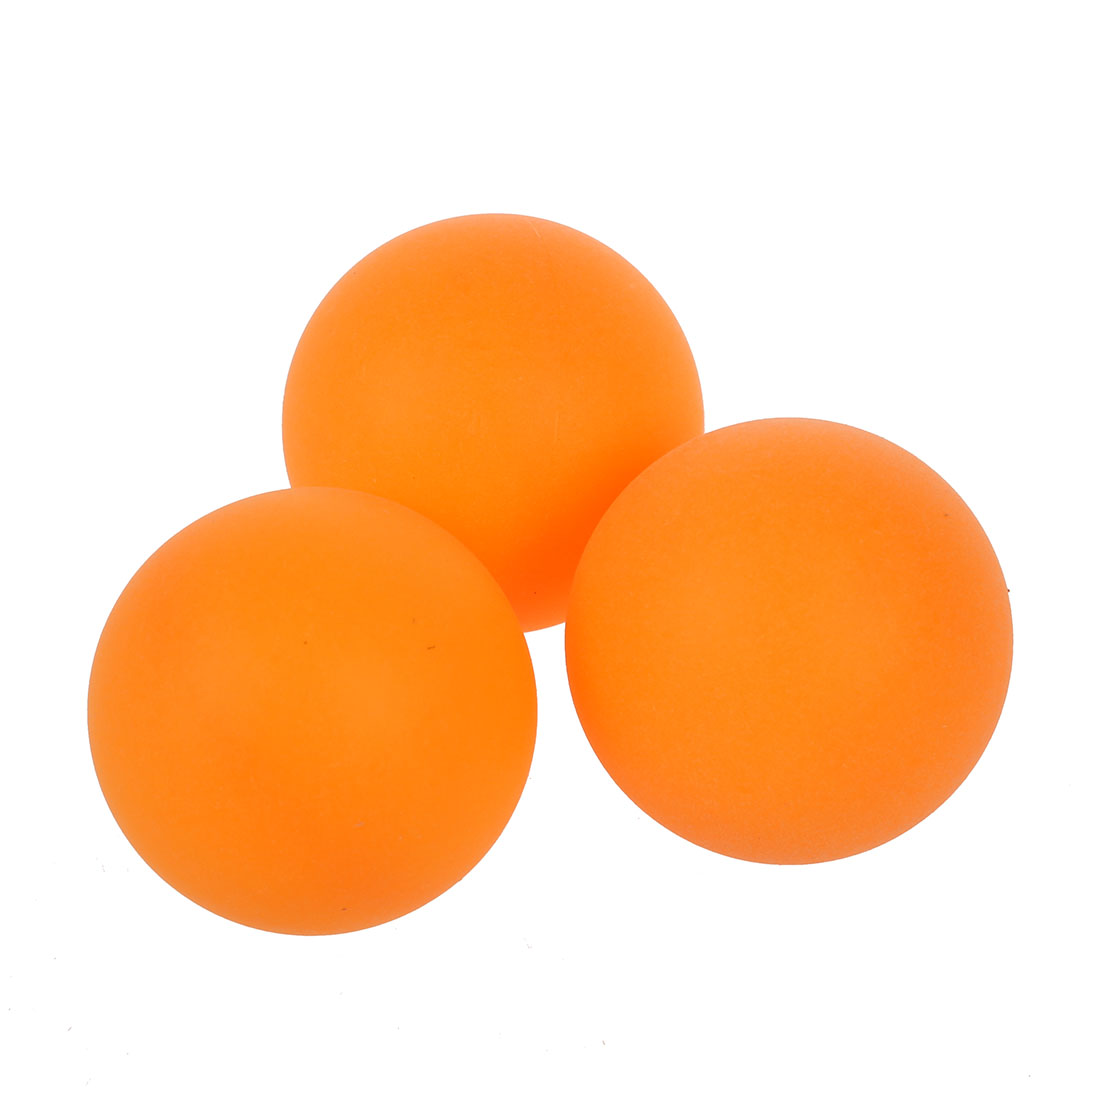 Sport orange ping pong balles de tennis de table 4cm dia - Balle plastique tennis de table ...